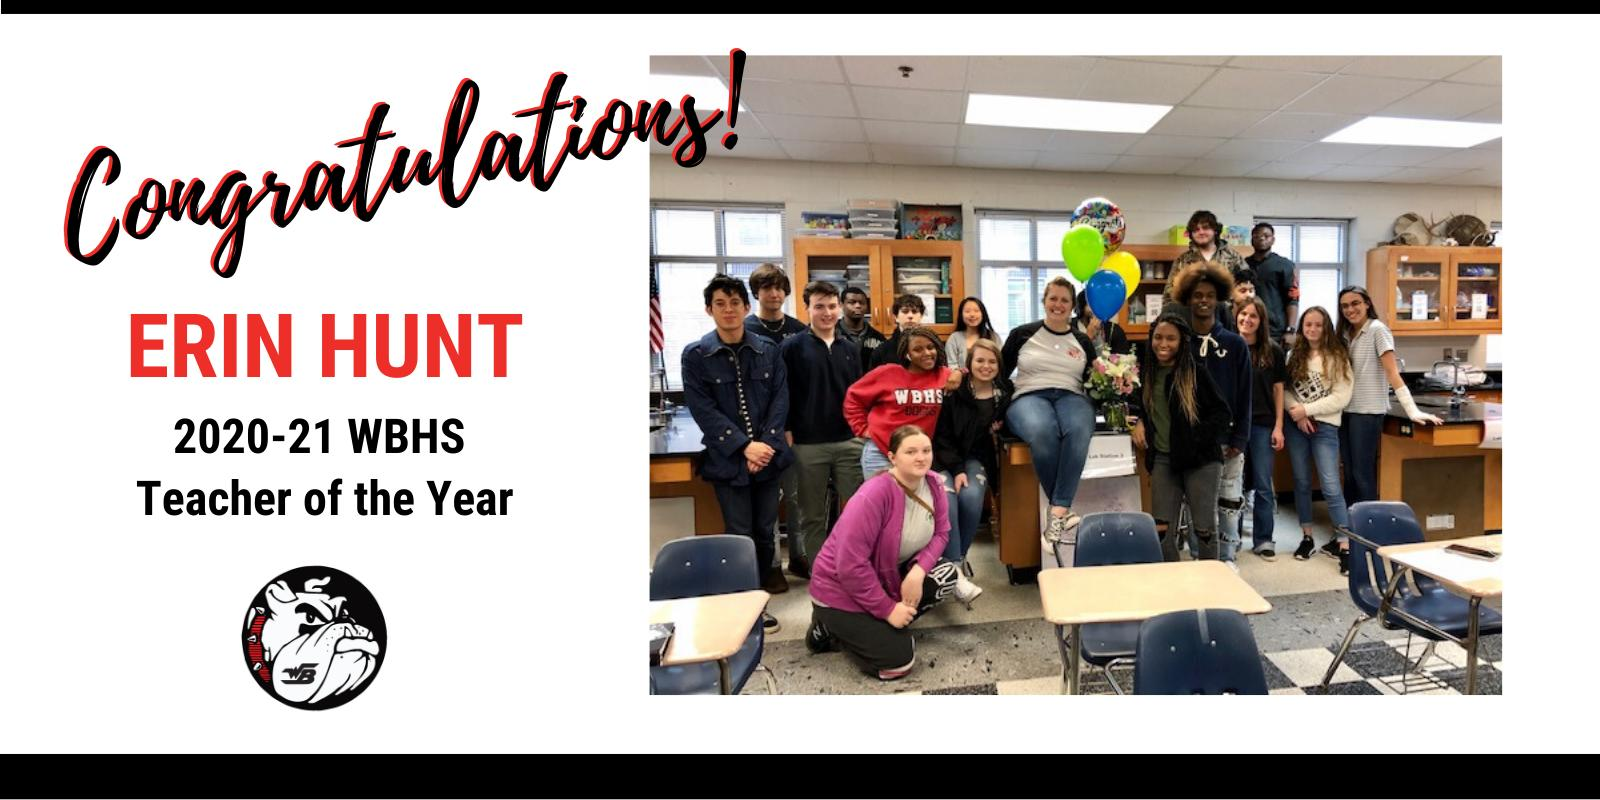 2020 WBHS Teacher of the Year - Erin Hunt